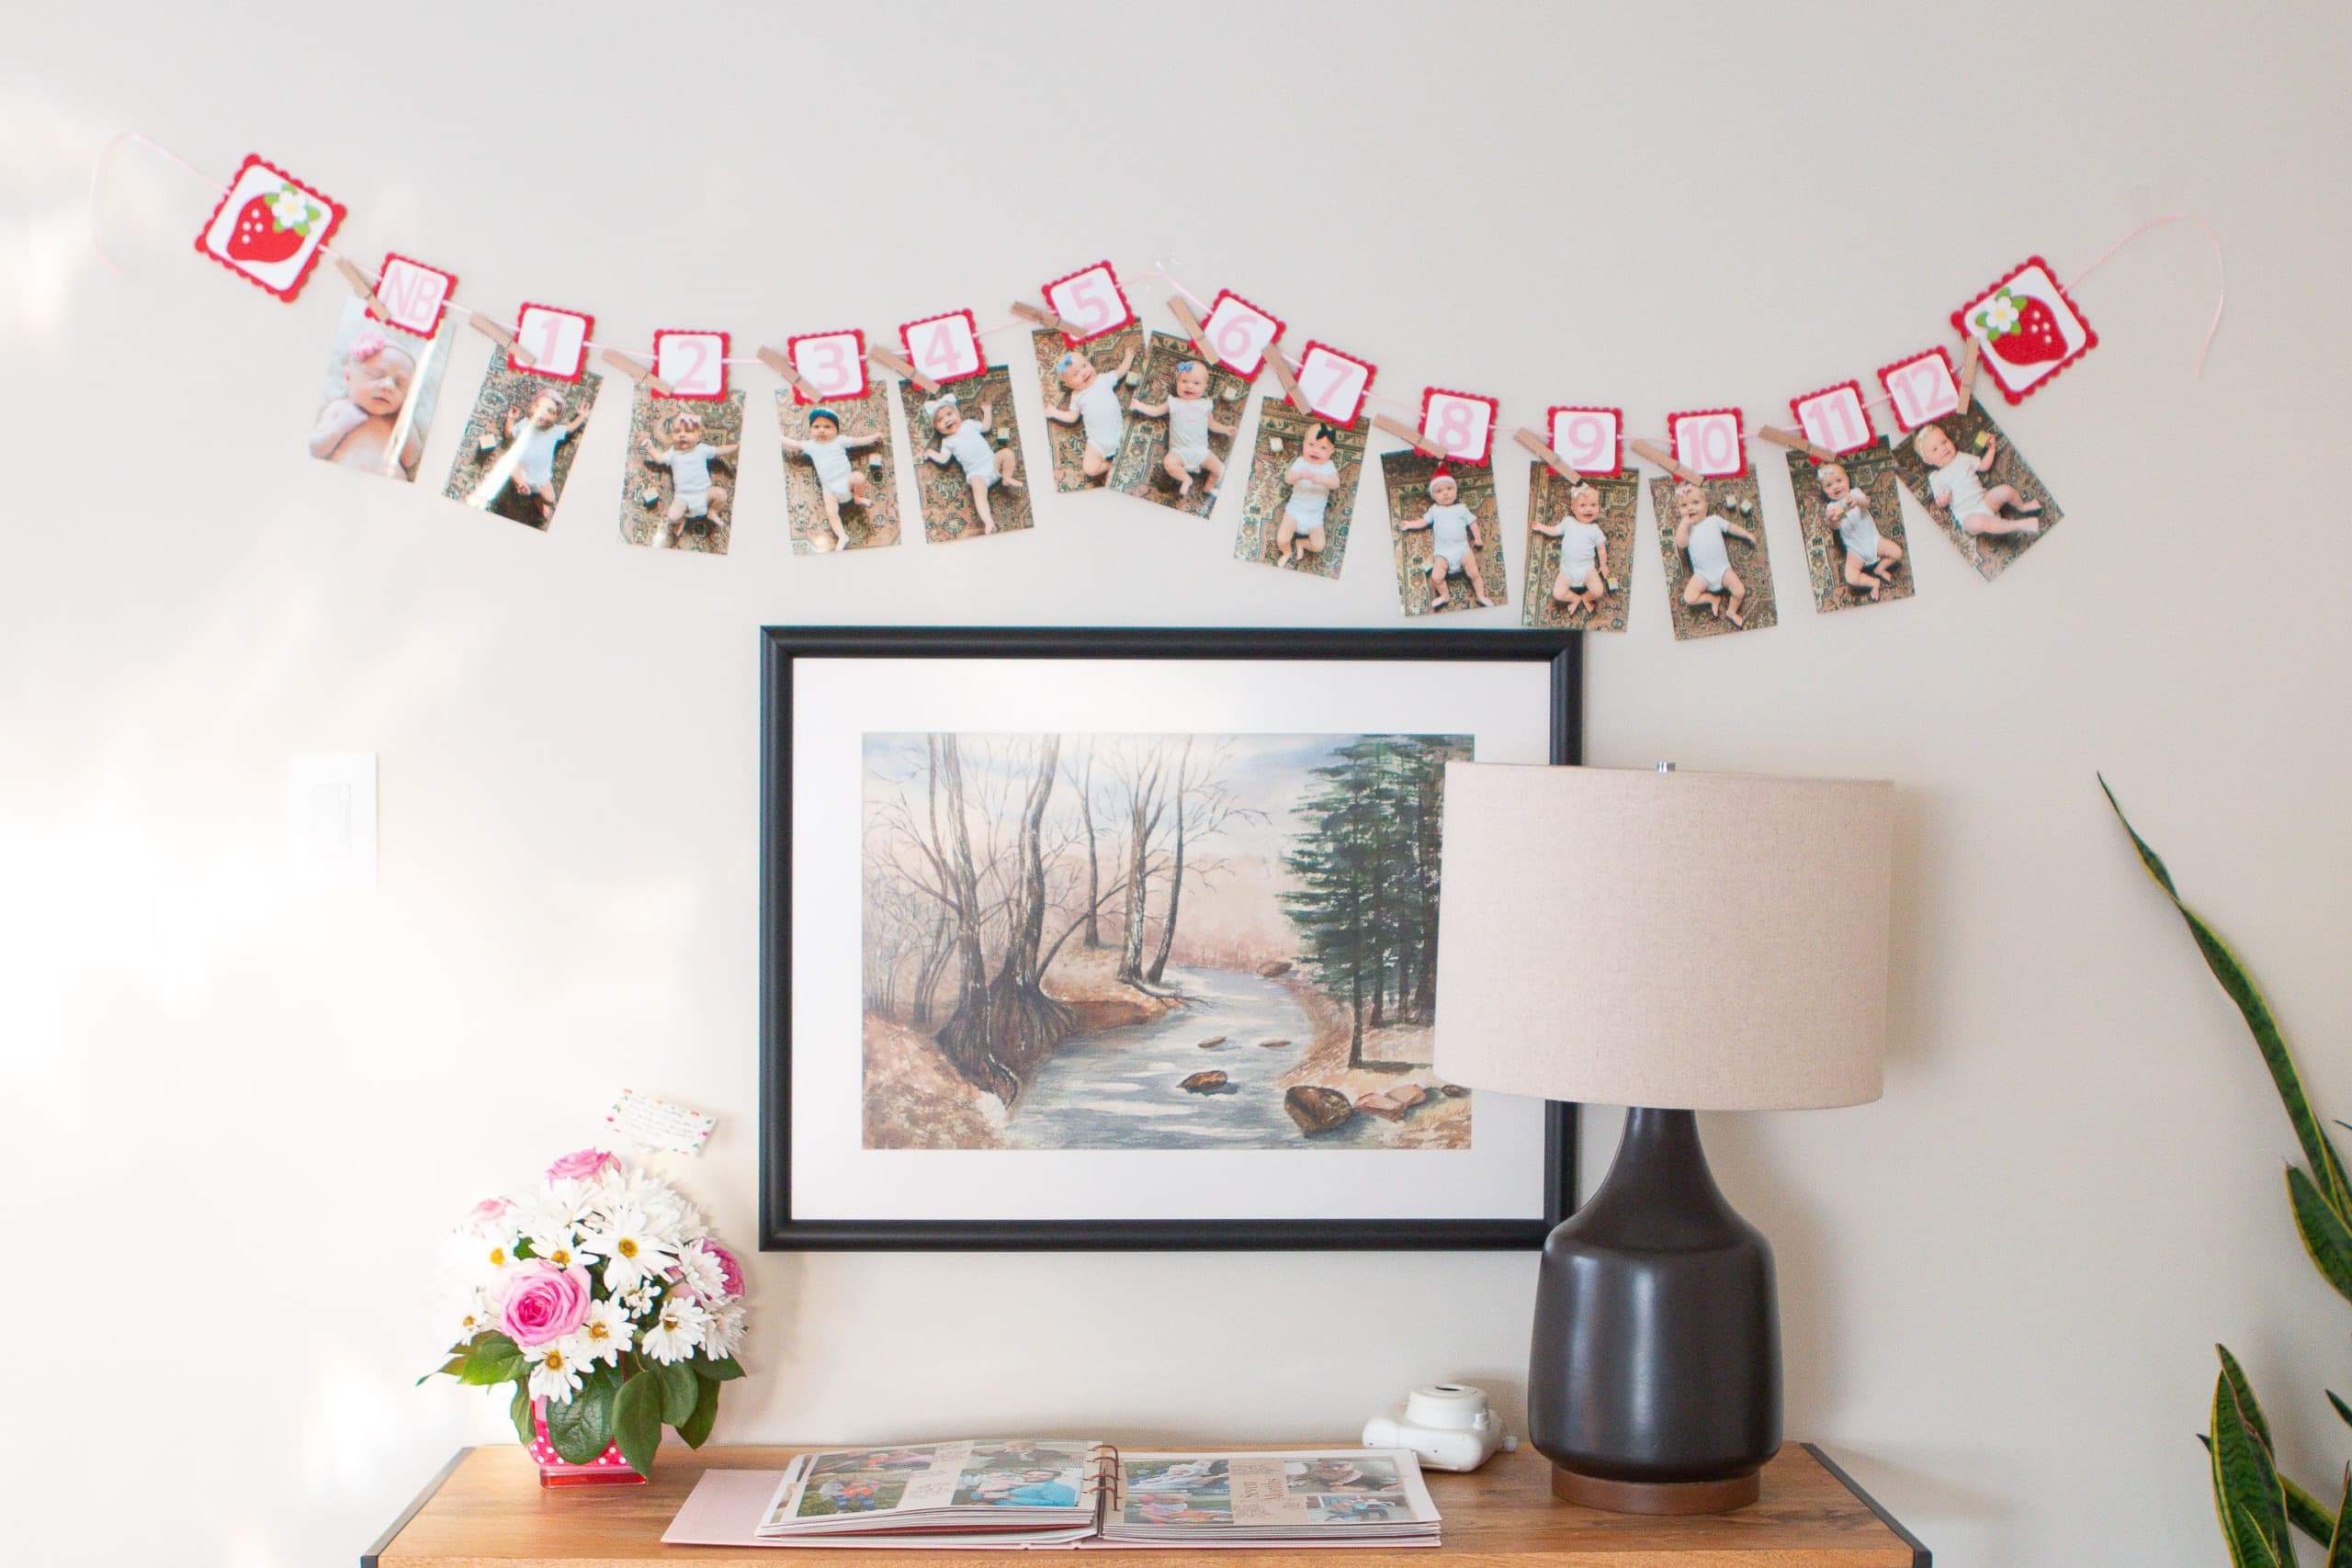 Strawberry banner from Etsy